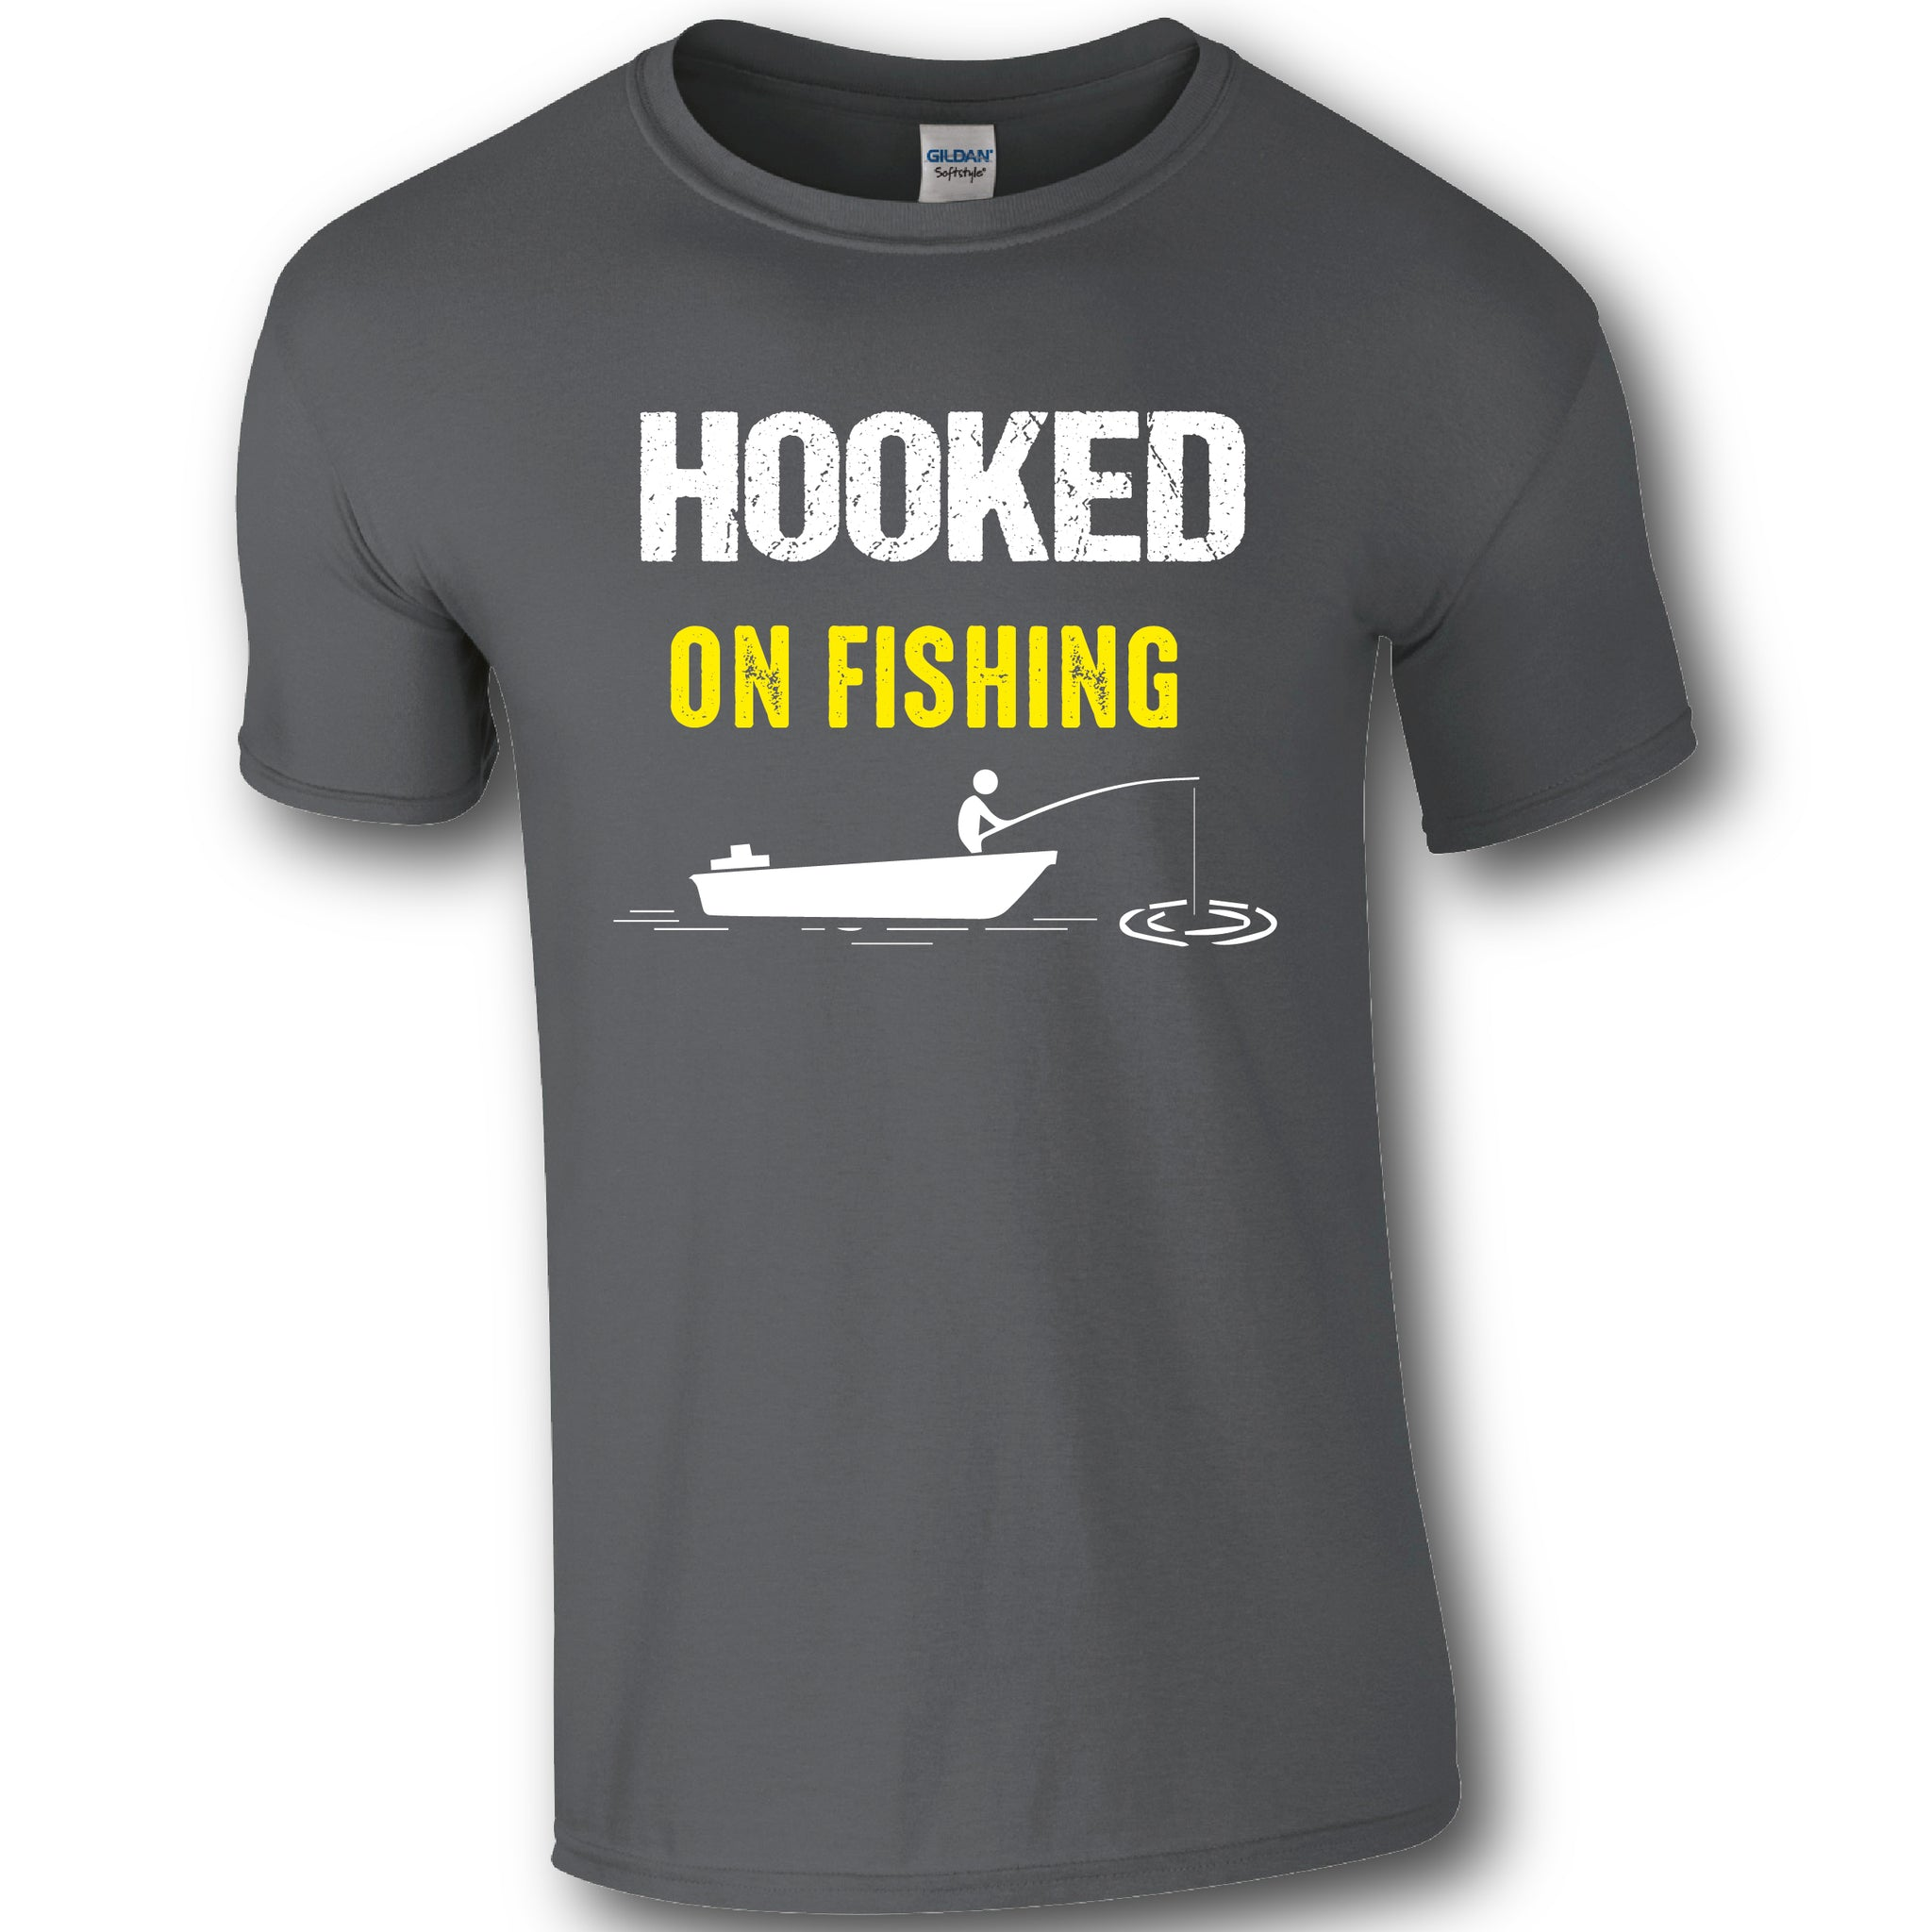 Hooked on Fishing, Fishing Humour T-shirt